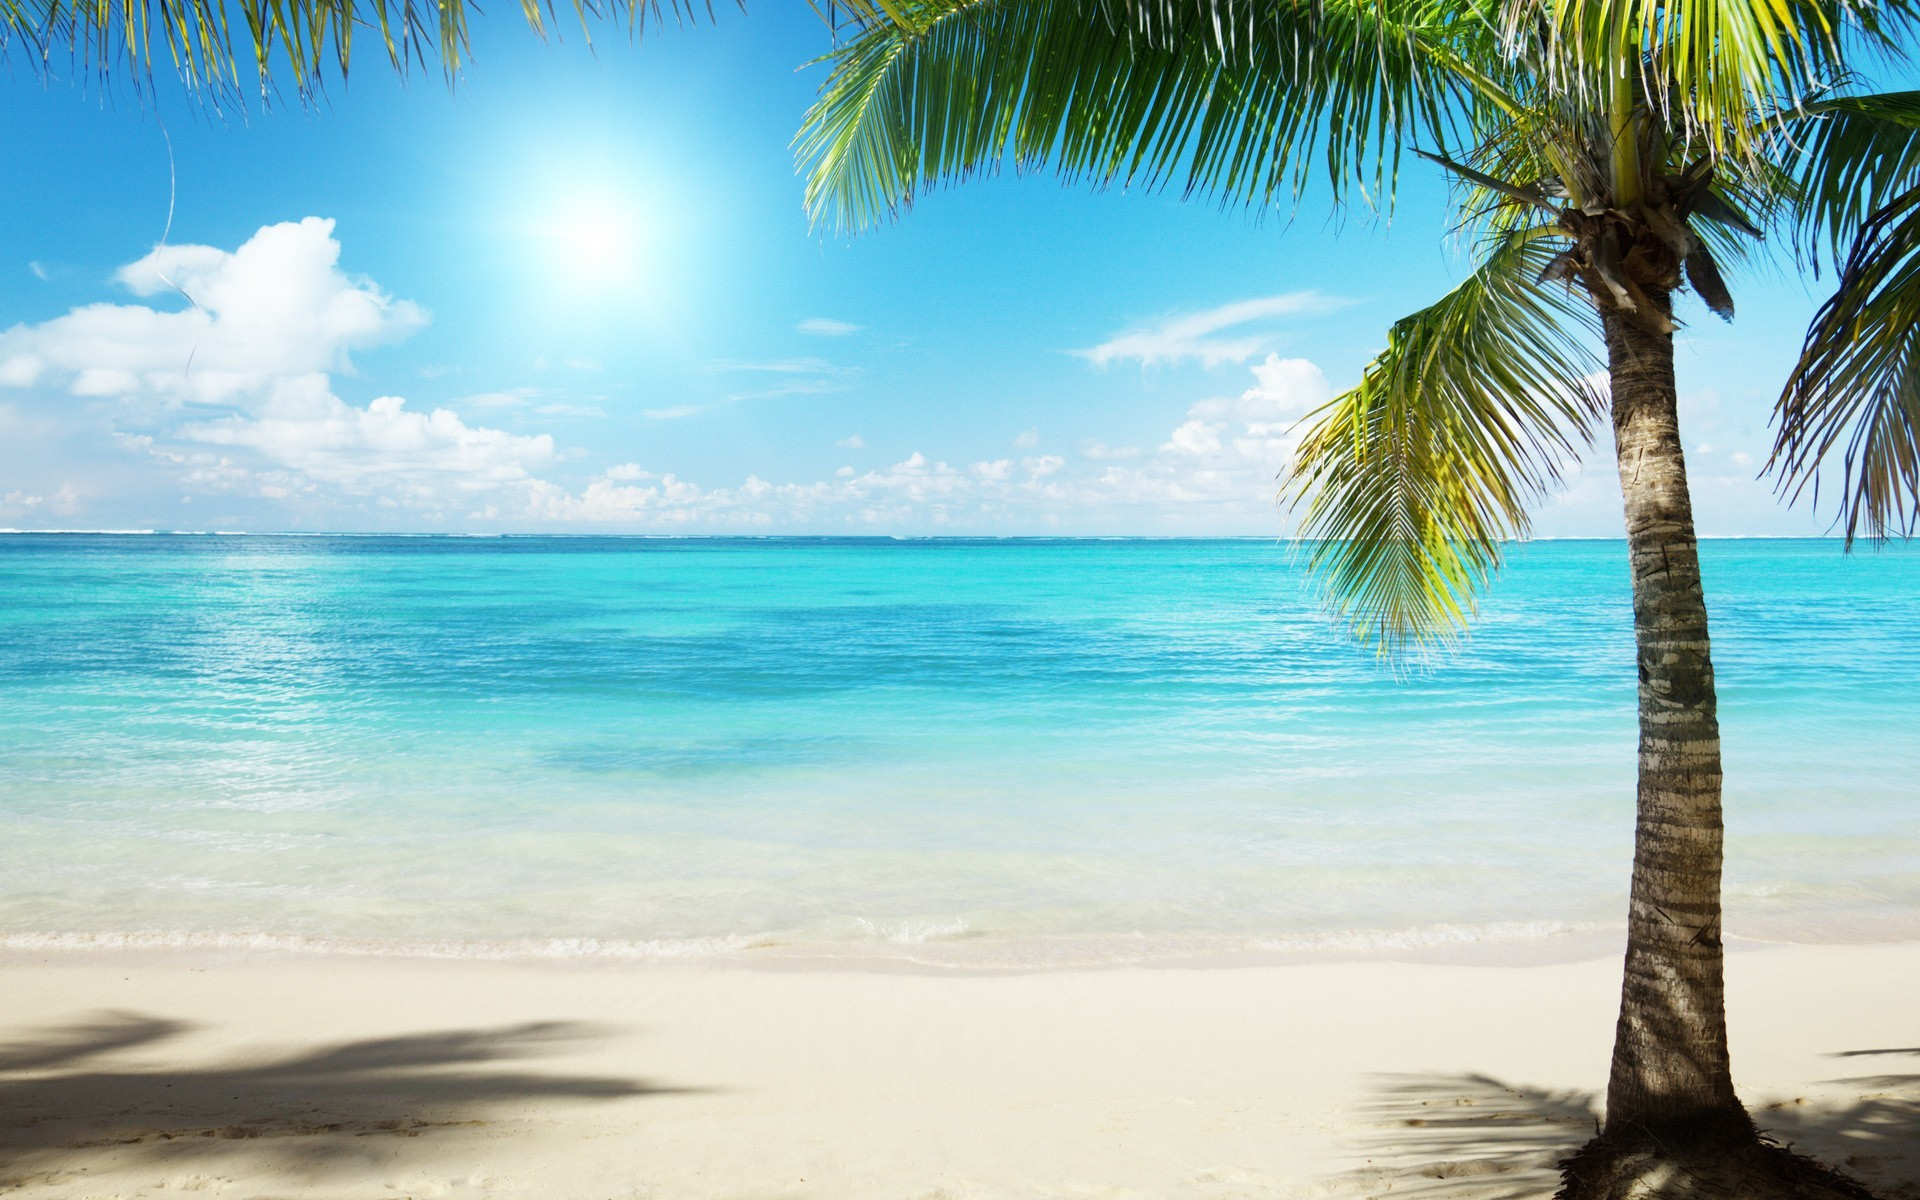 Beach · Download Beach Wallpaper 13045 px High Resolution .